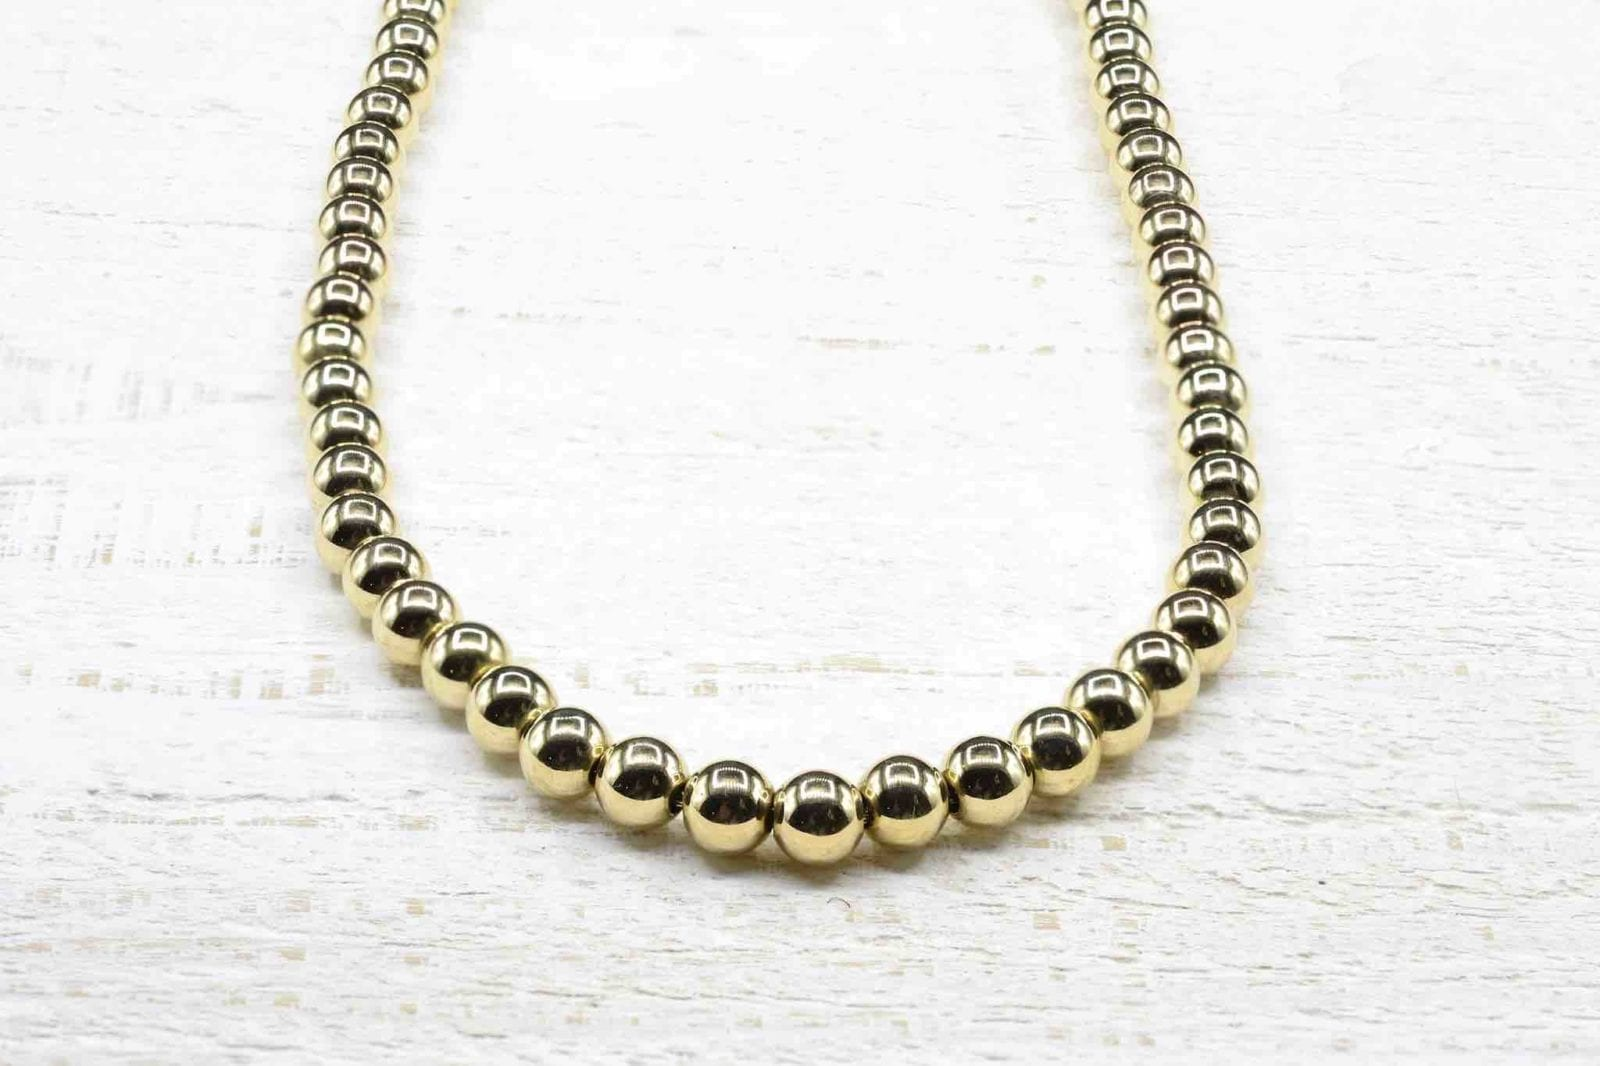 Collier perles d'or